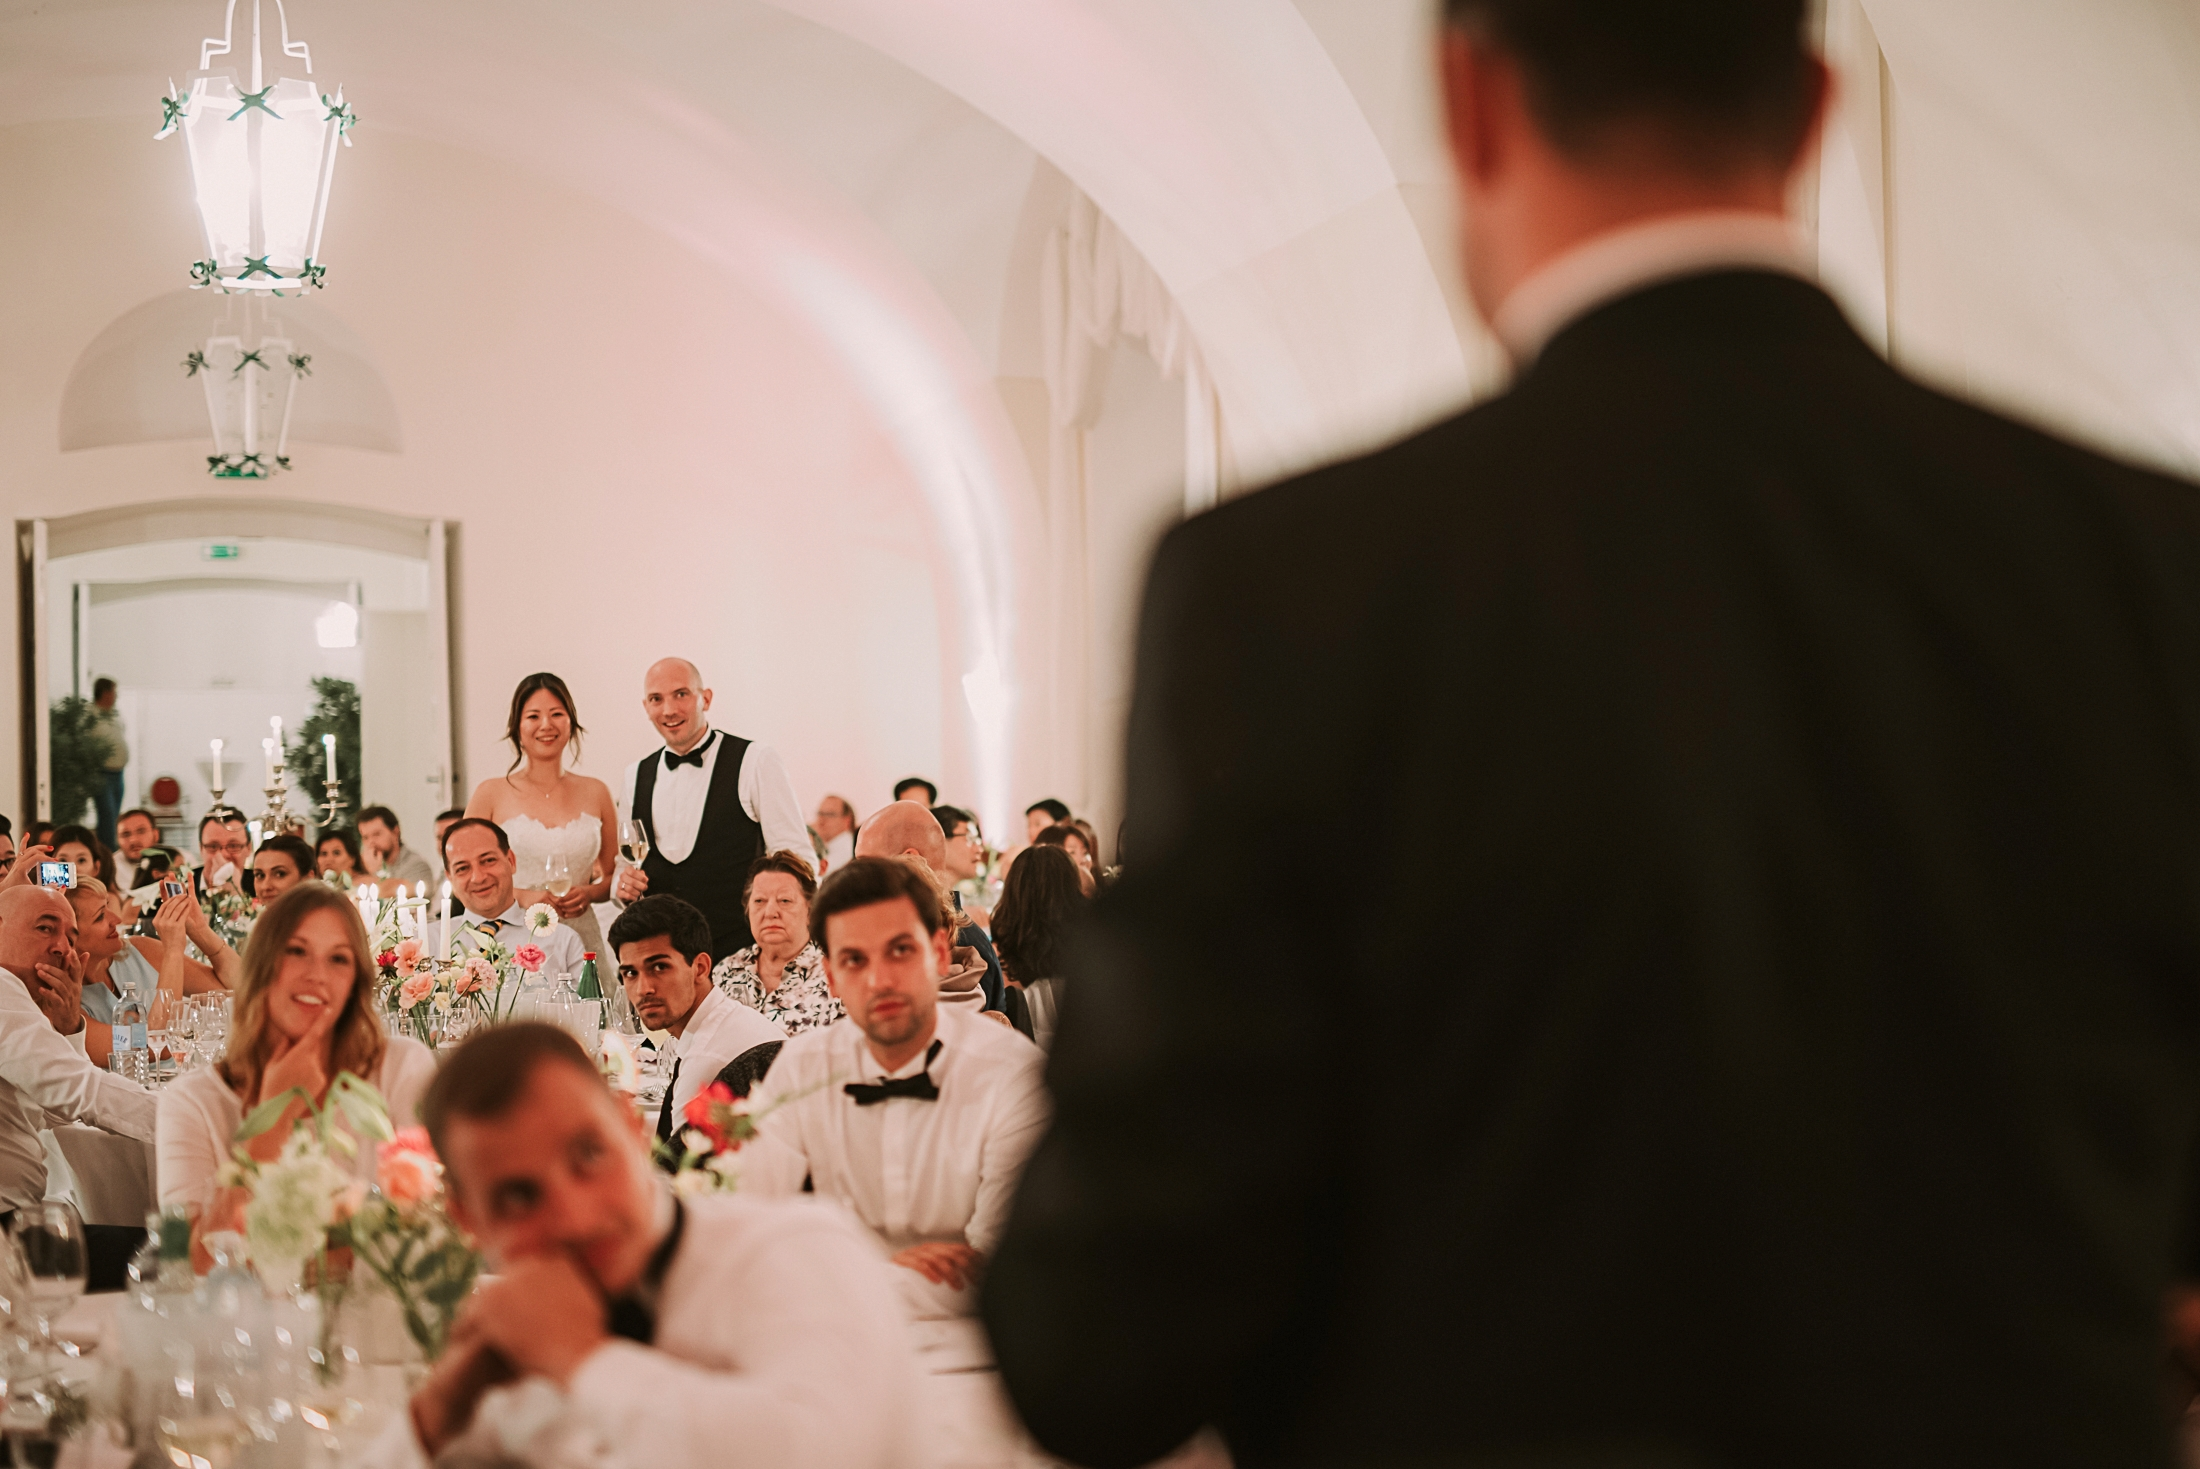 Austria Halbturn schloss castle wedding photographer (219 of 240).jpg